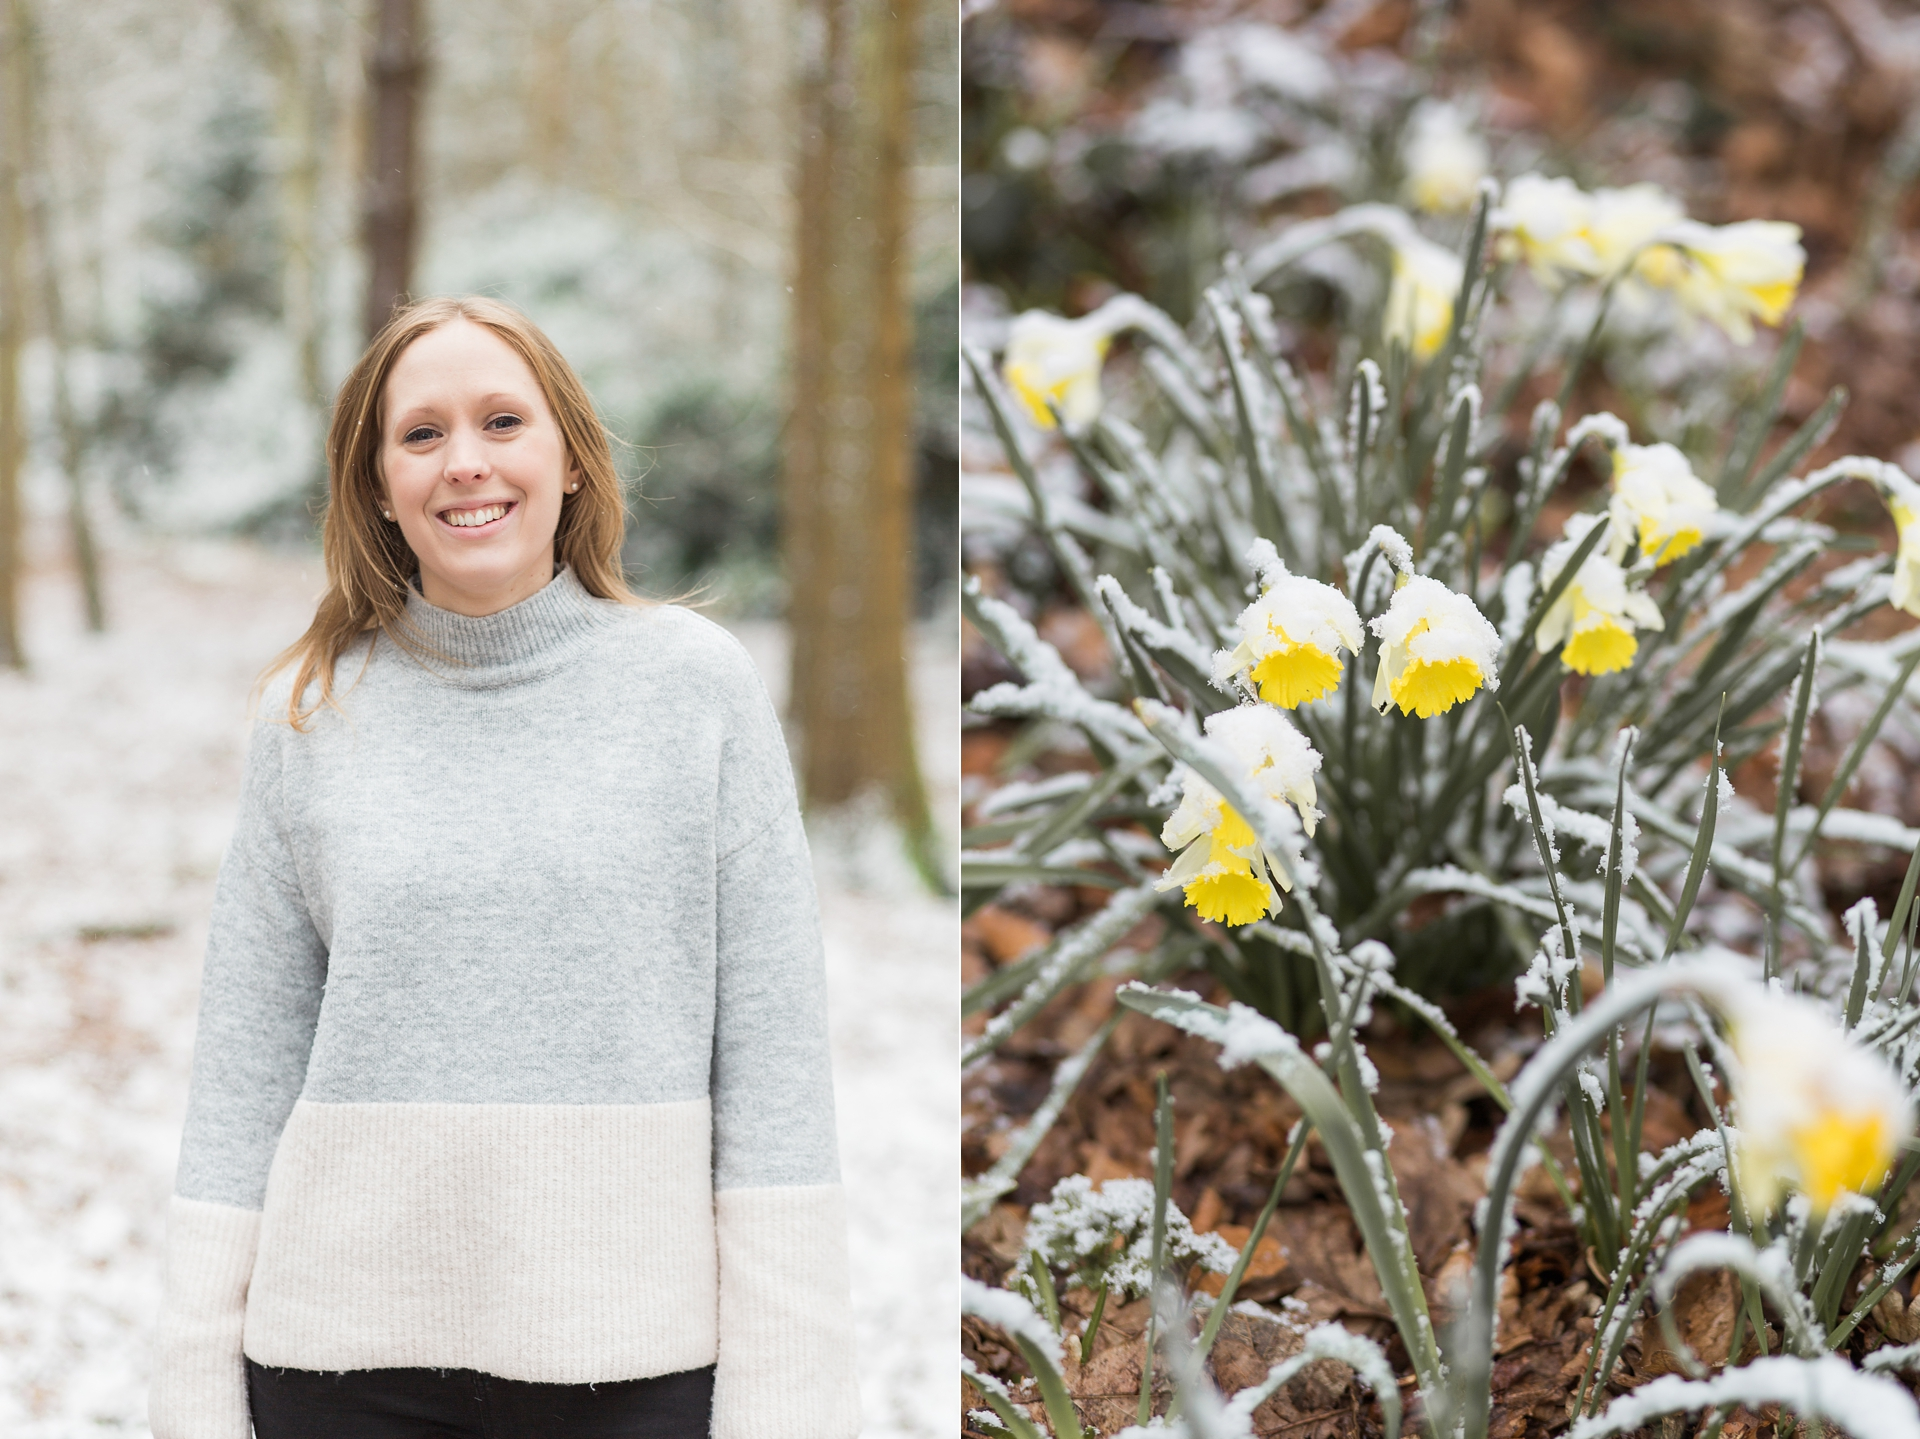 Woodland Engagement Shoot in snow portrait and daffodils